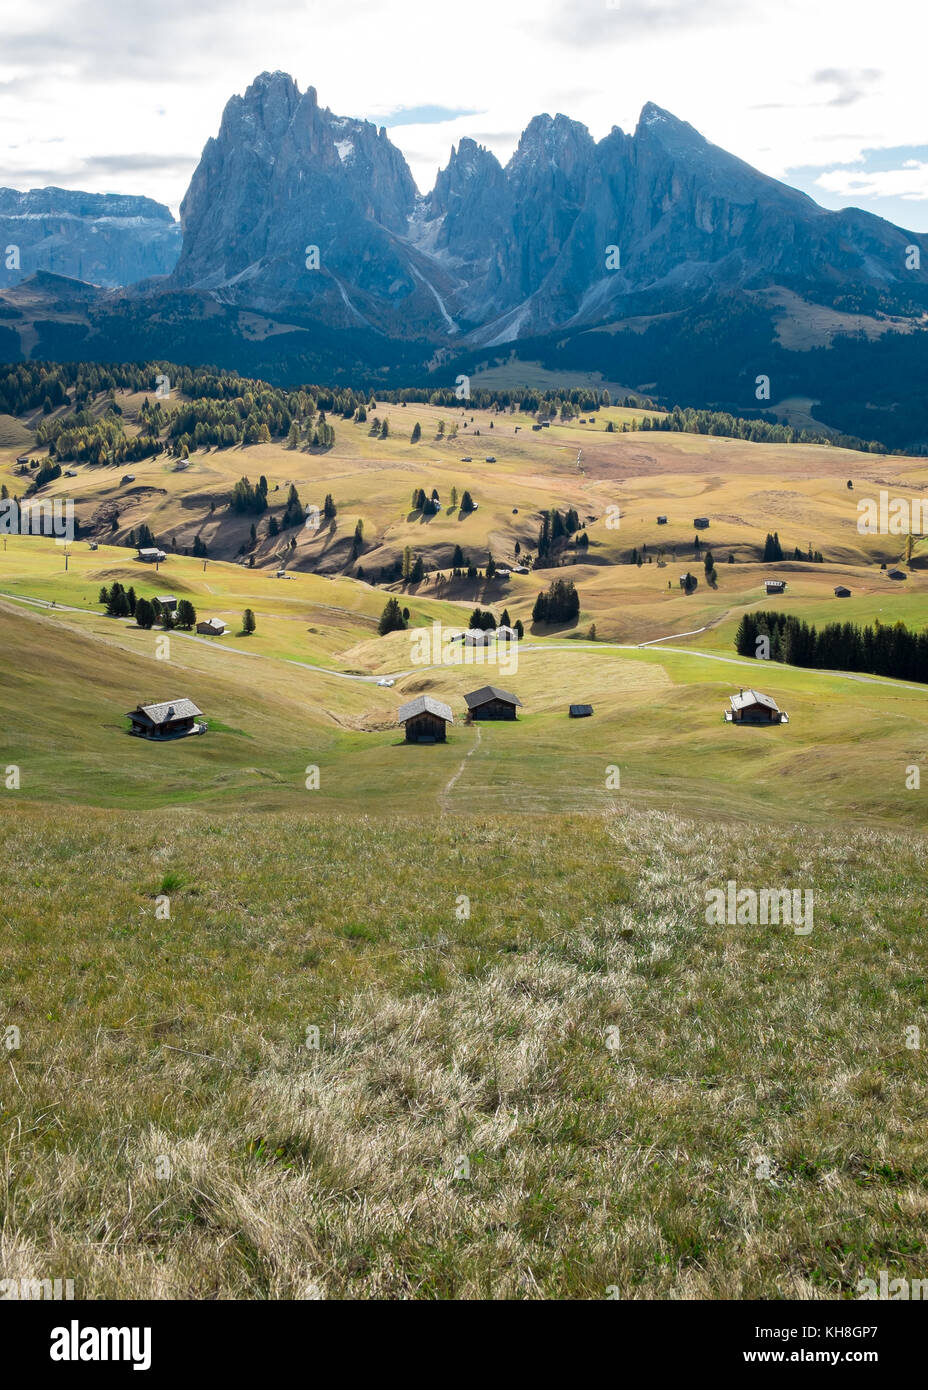 Alpe di Siusi, Dolomites with Leading Line on Grass - Stock Image